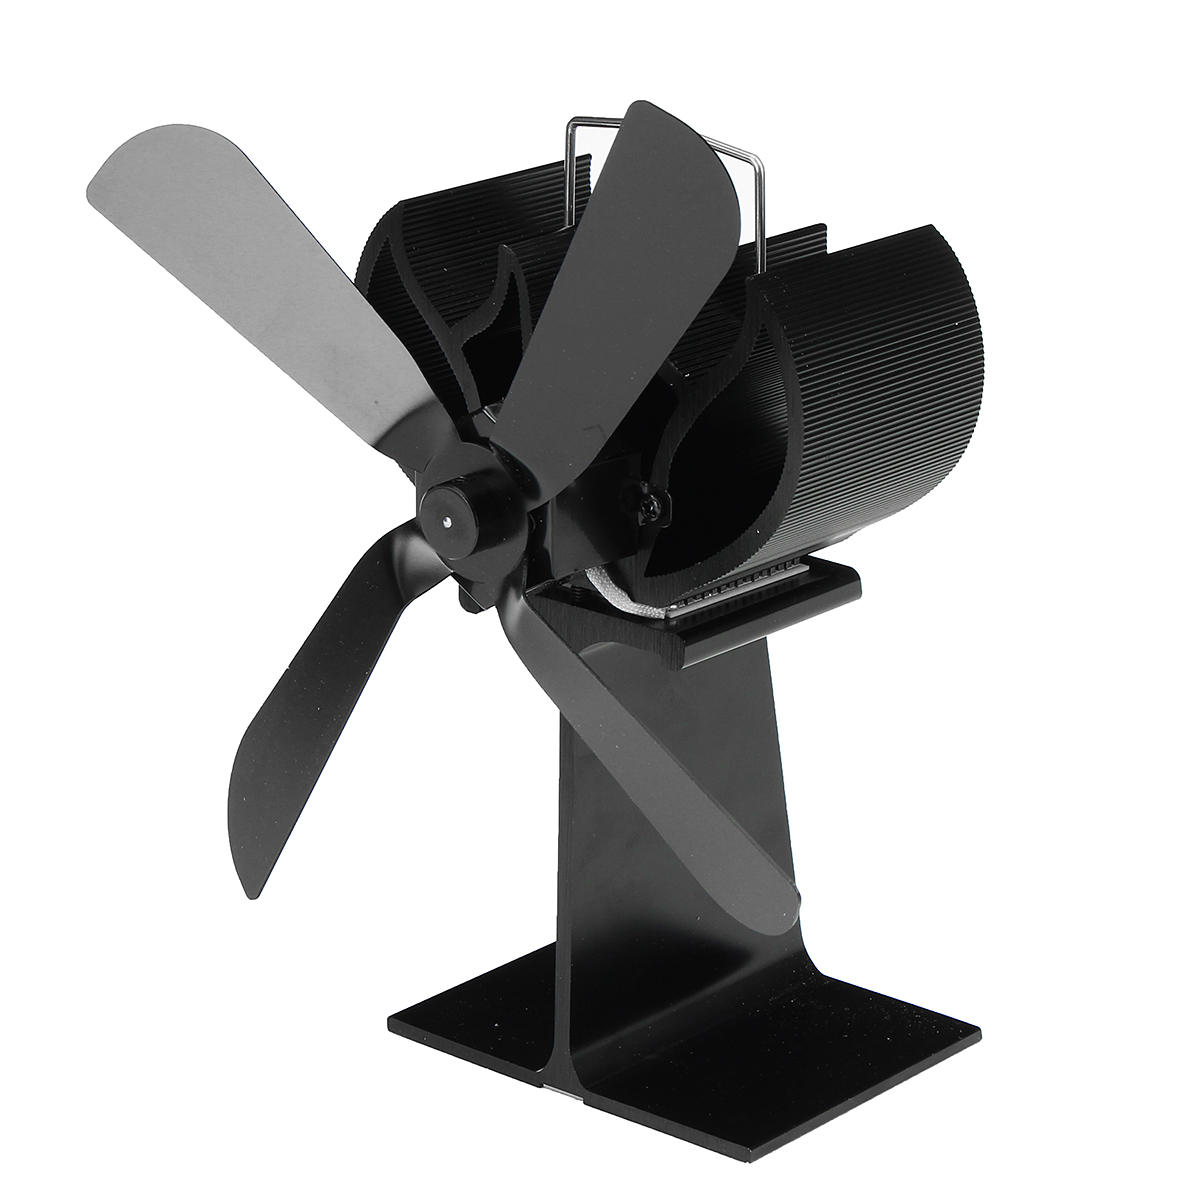 4 Blade Stove Fan Quiet Heat Ed Wood Log Burner Eco Friendly Circulation For Fireplaces Cod